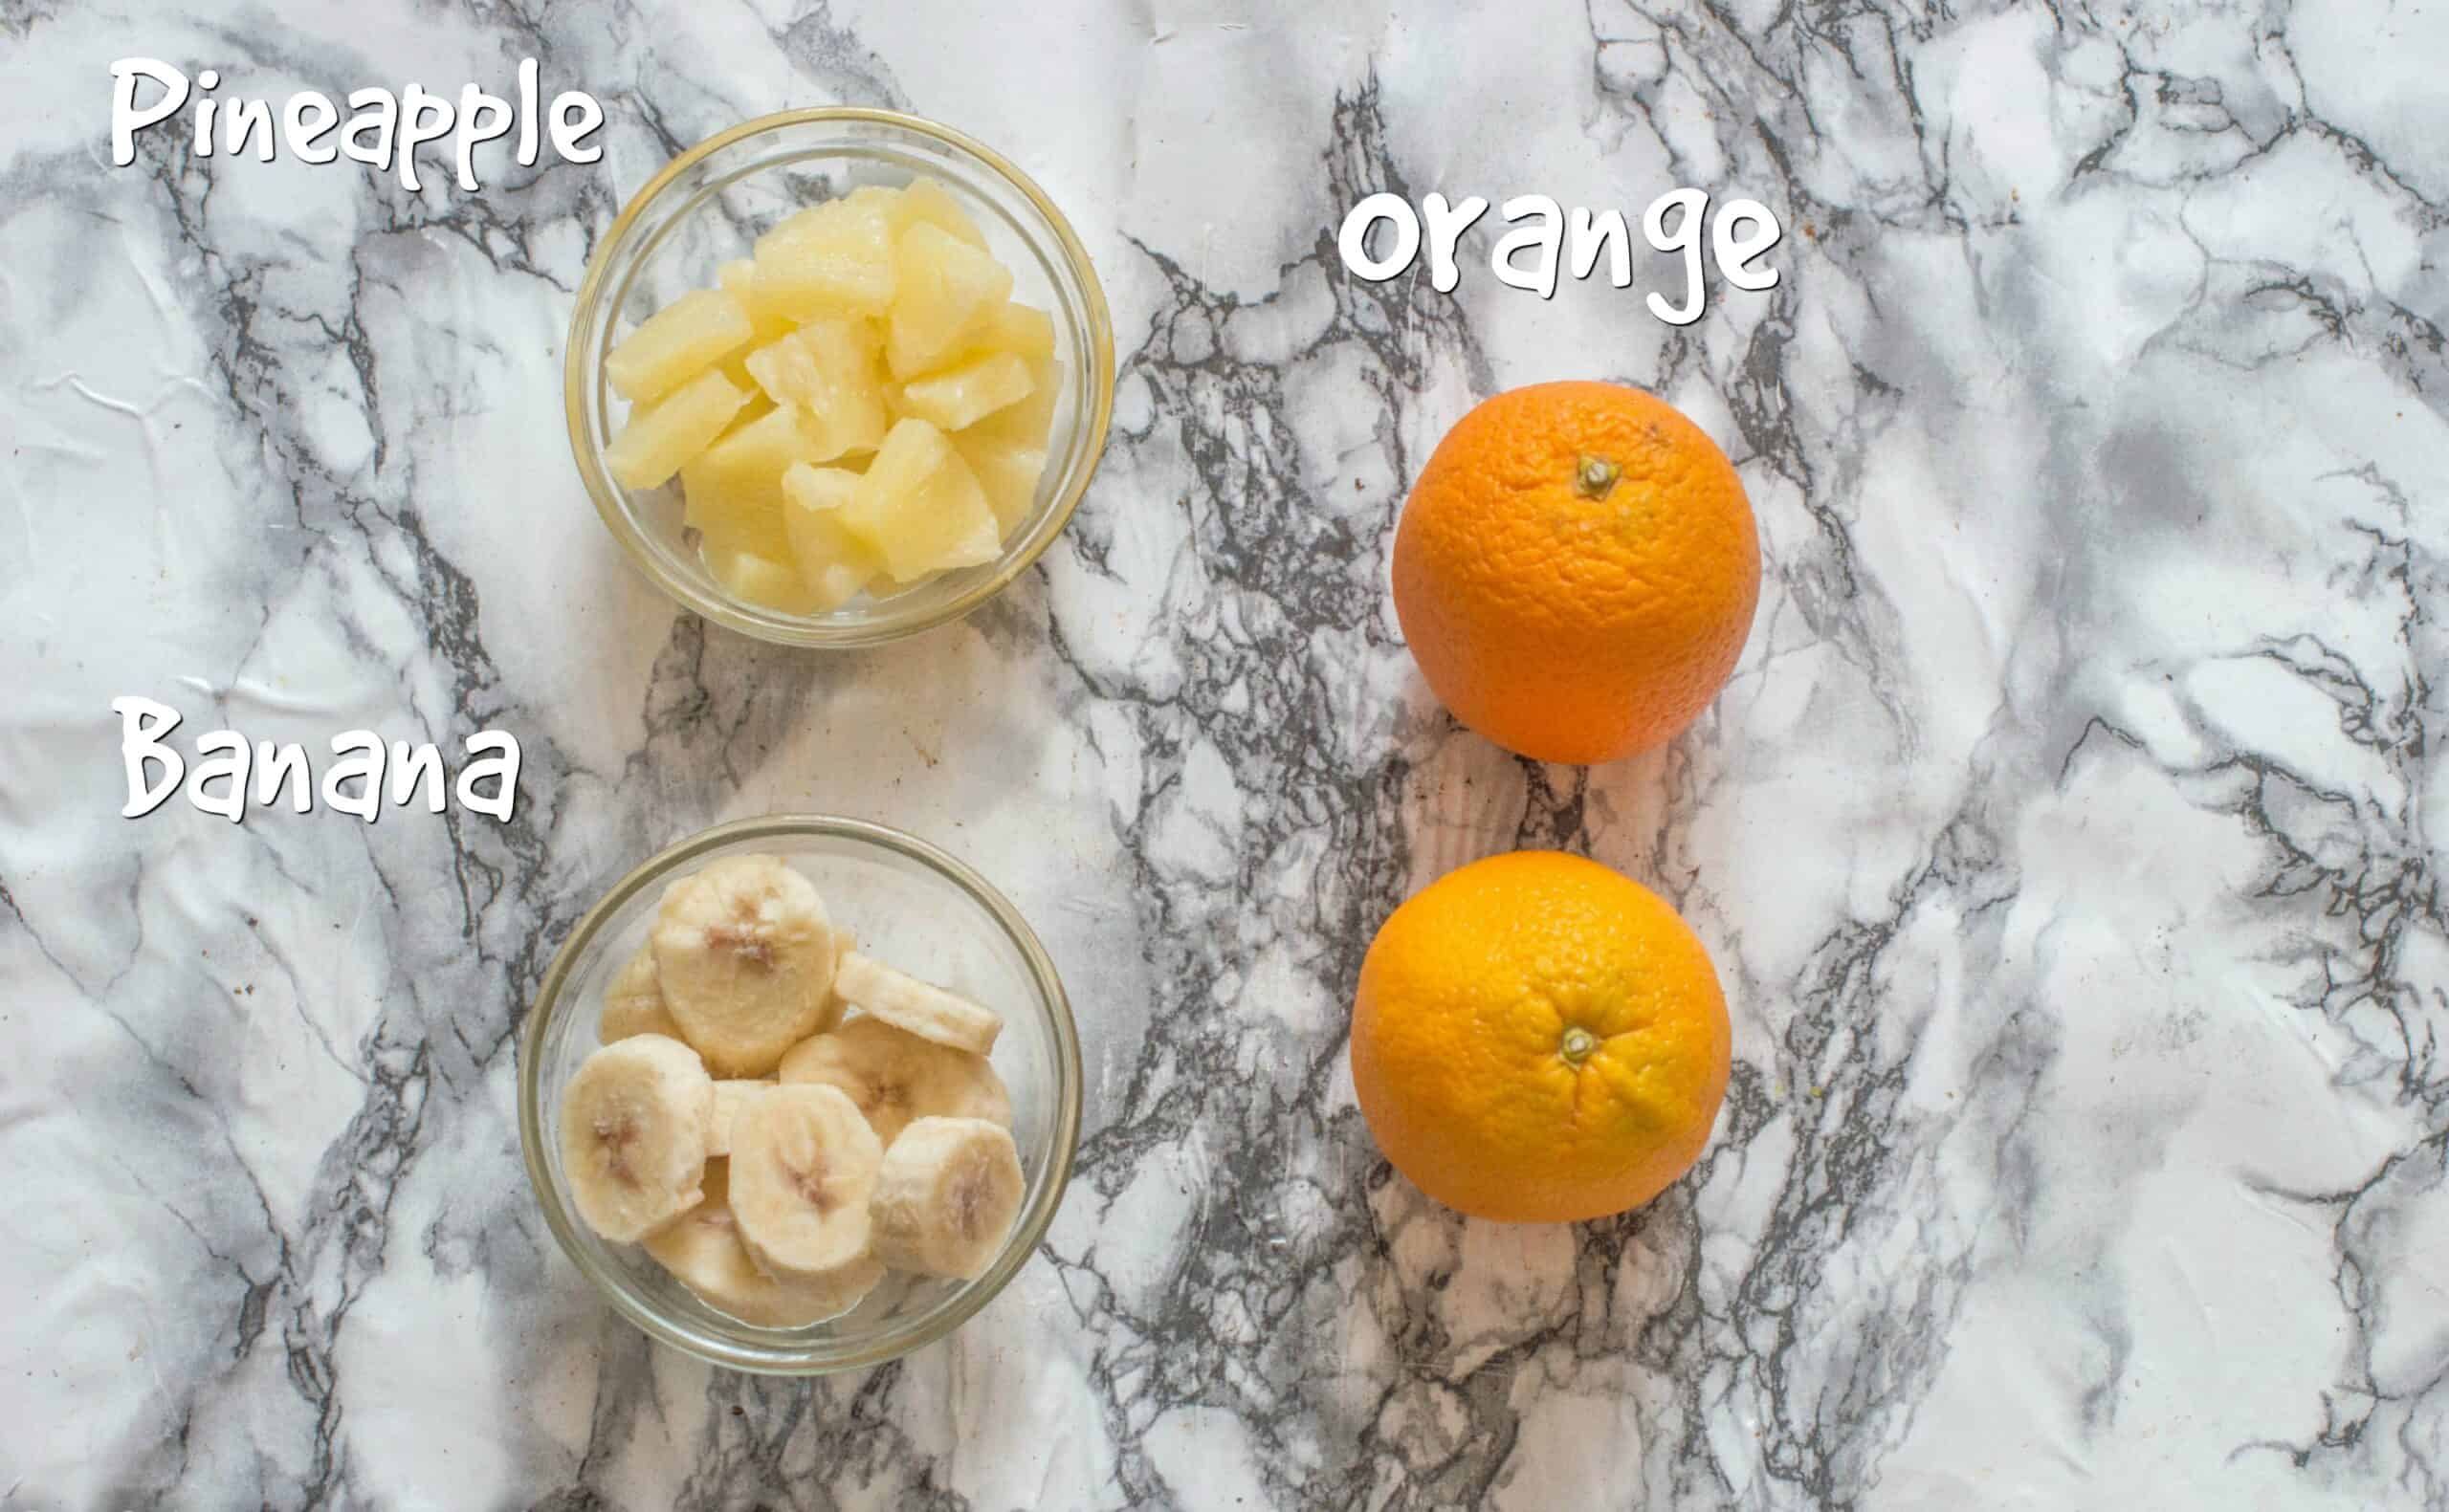 ingredients for the smoothie